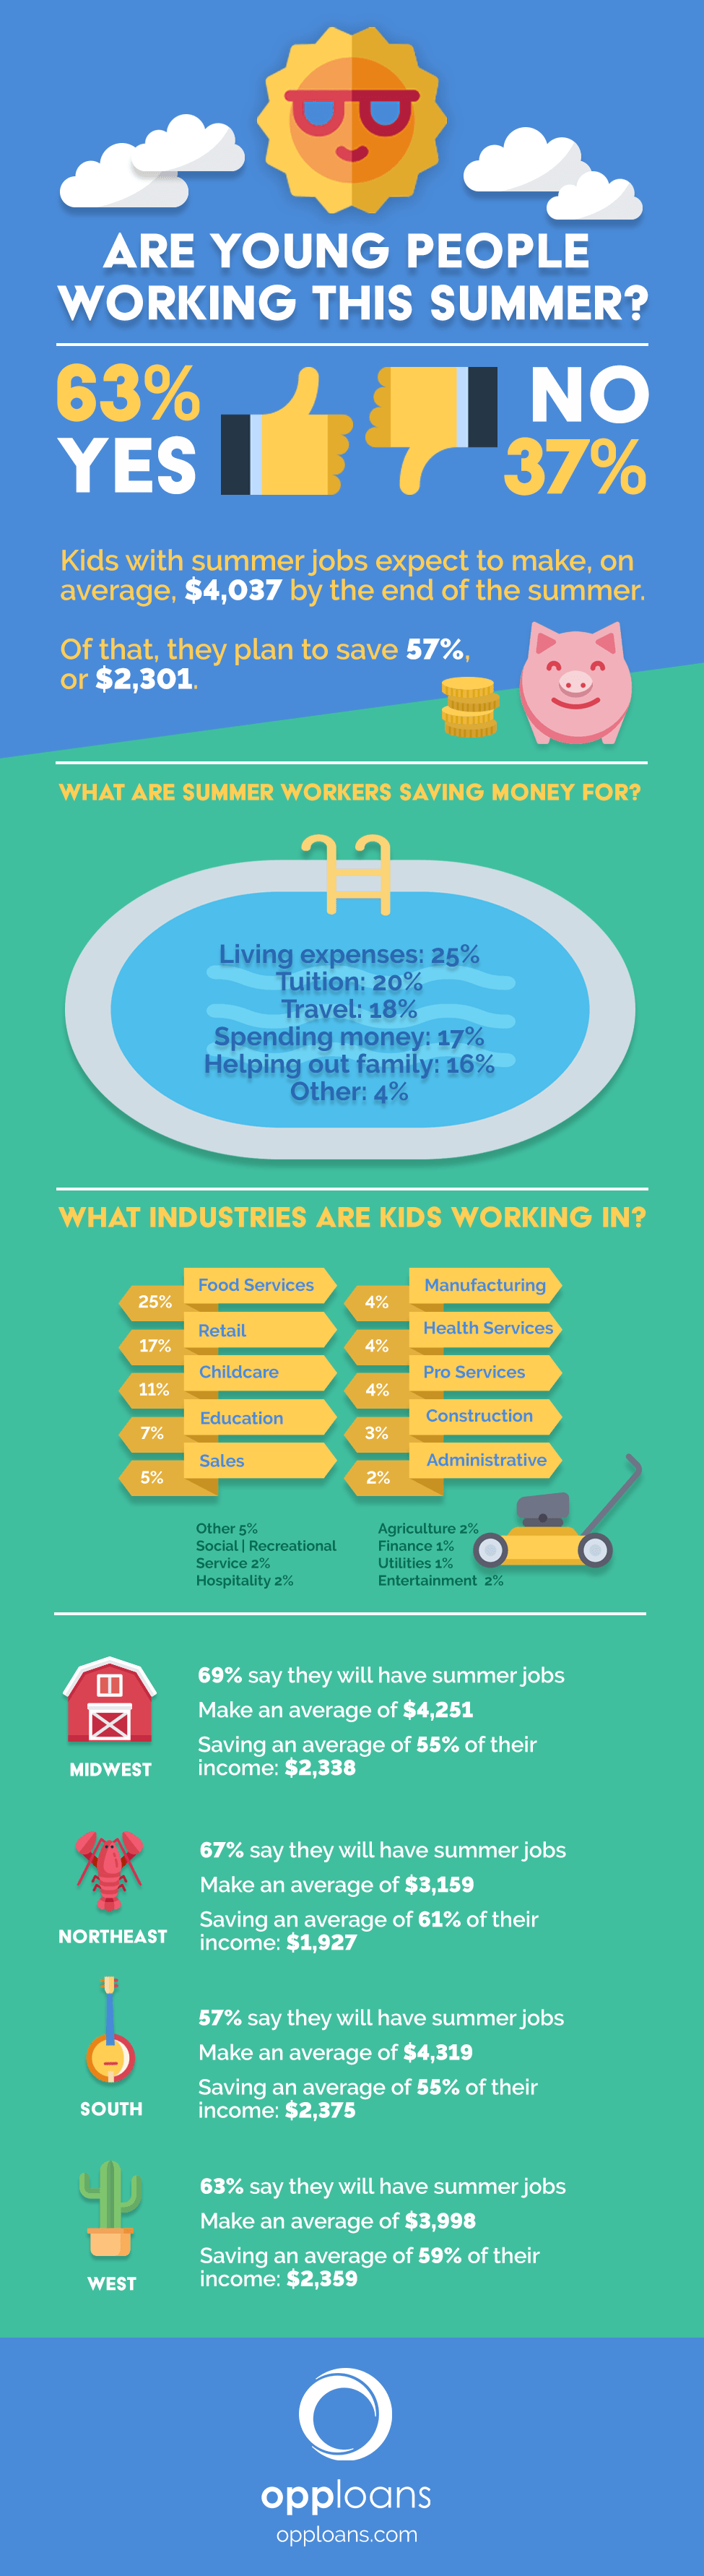 Teens and Summer Jobs - Infographic